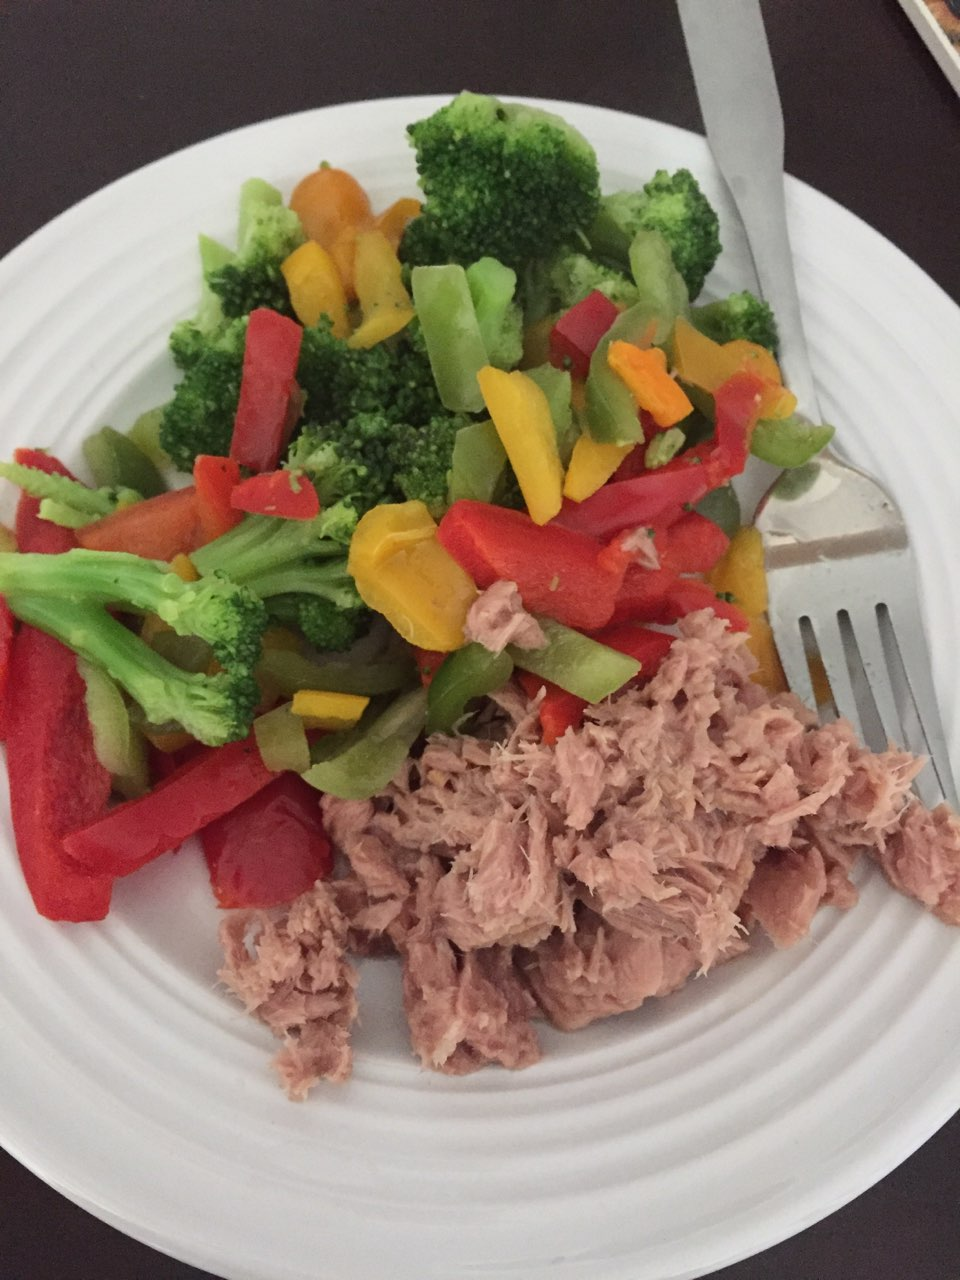 Today 39 s lunch serving size can of tuna fish w o mayo or for Serving size of fish